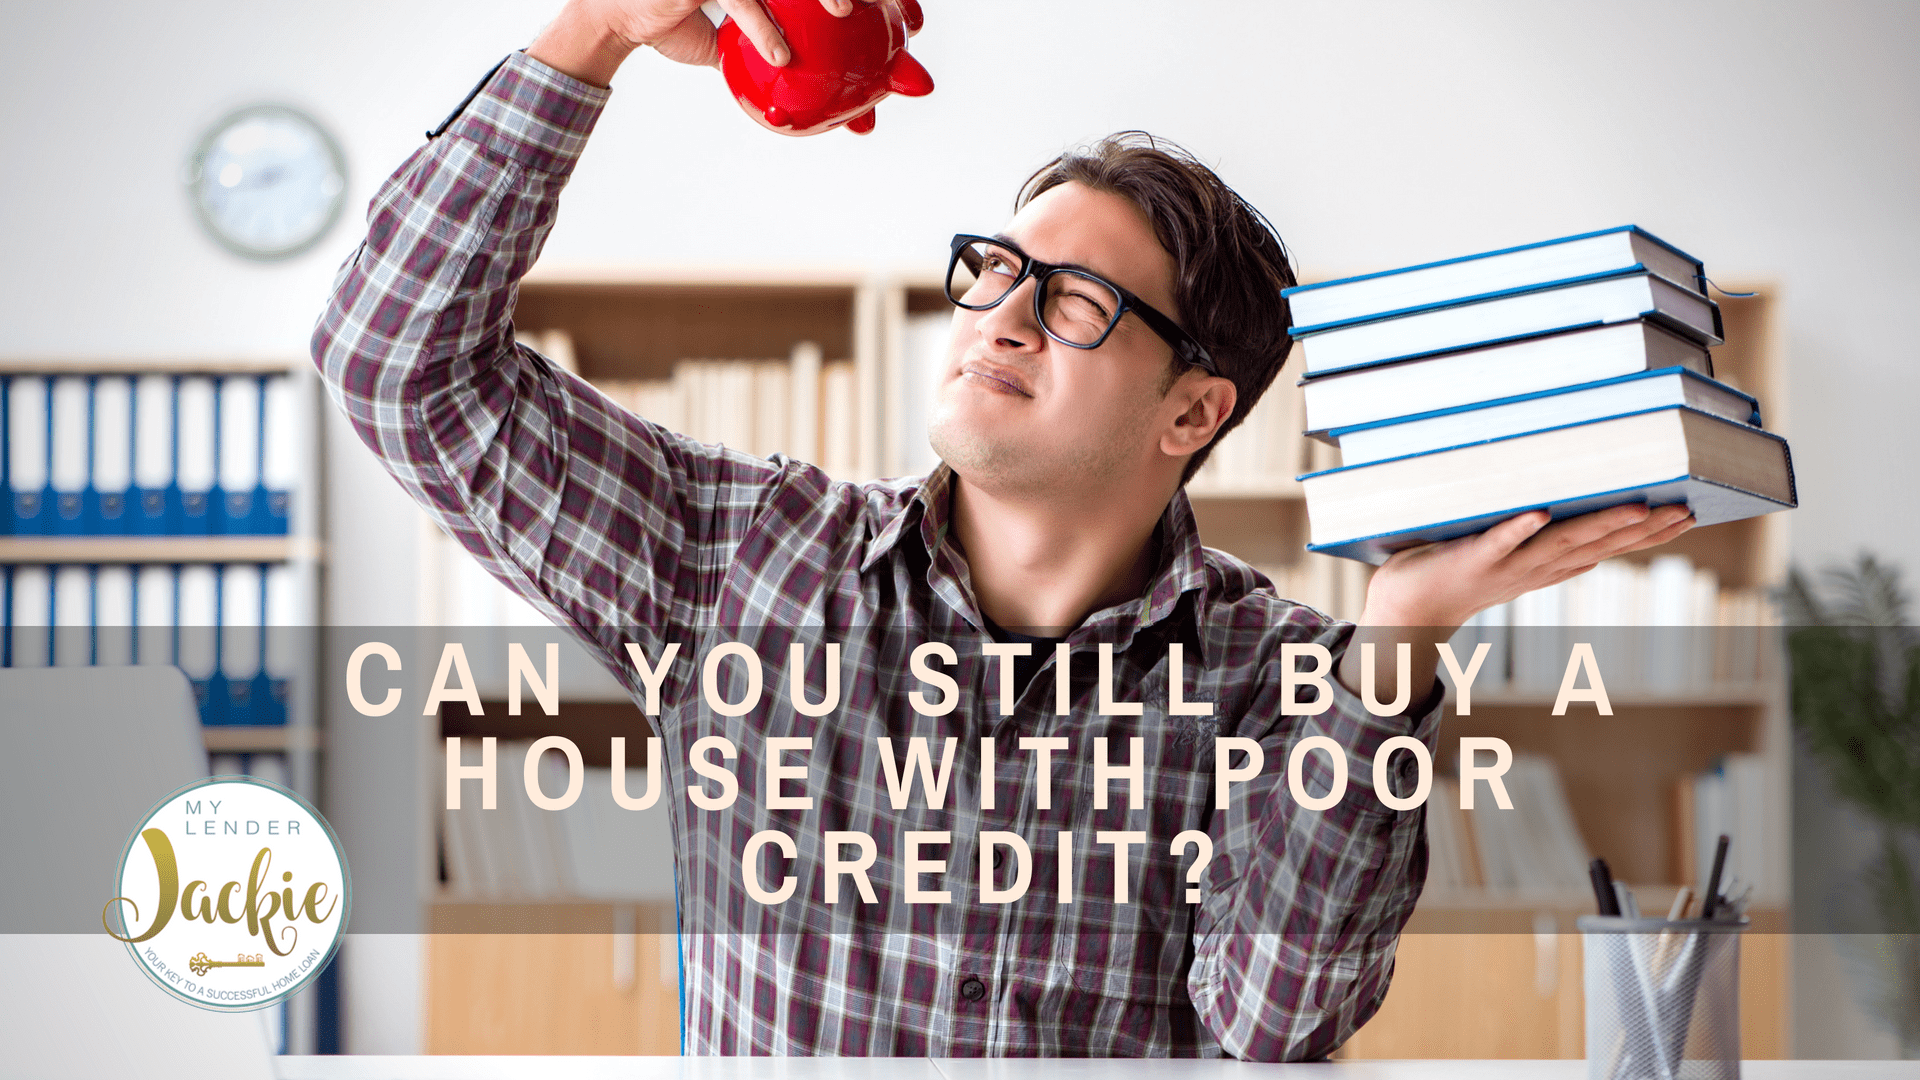 Can you buy a hosue with poor credit